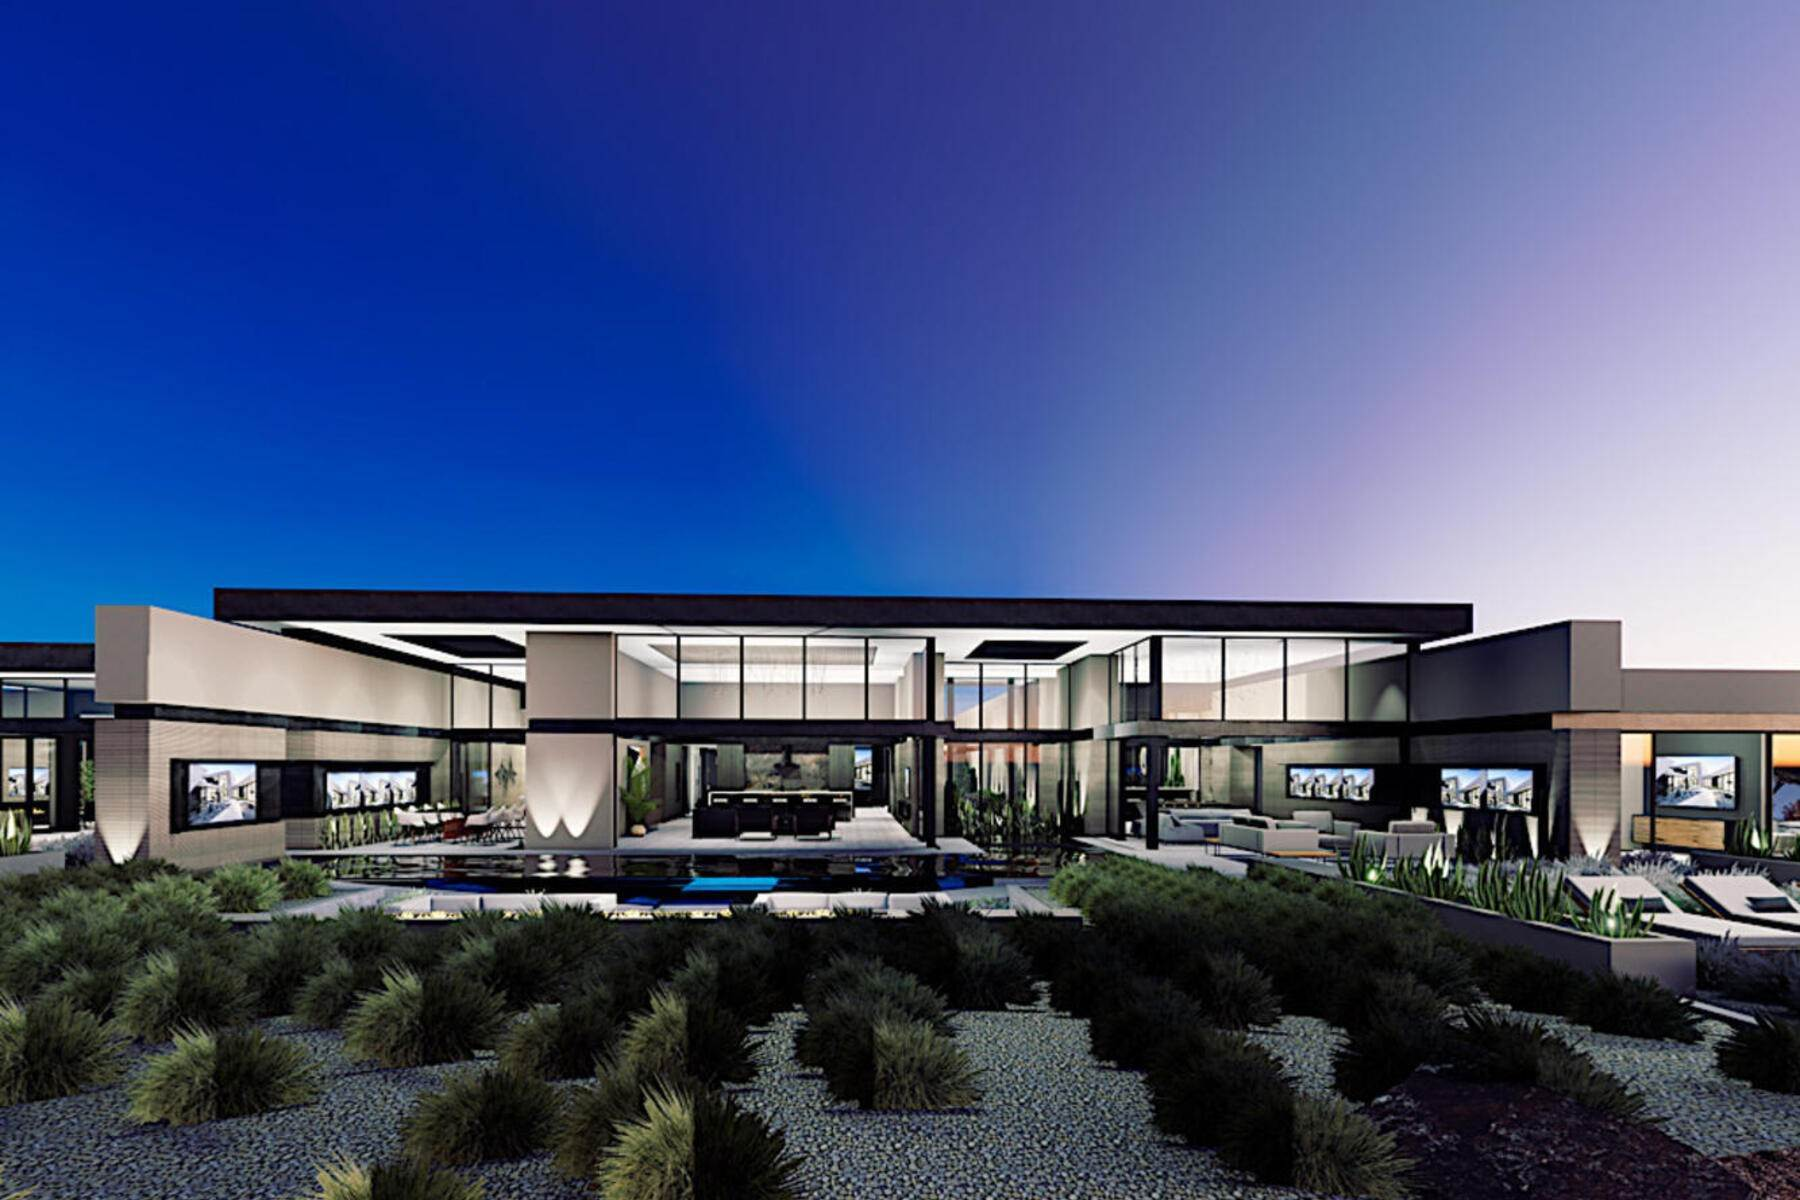 Single Family Homes for Active at STRATA New Single Story Modern Custom with Sensational and Sweeping Strip View 720 Dragon Peak Drive Henderson, Nevada 89012 United States